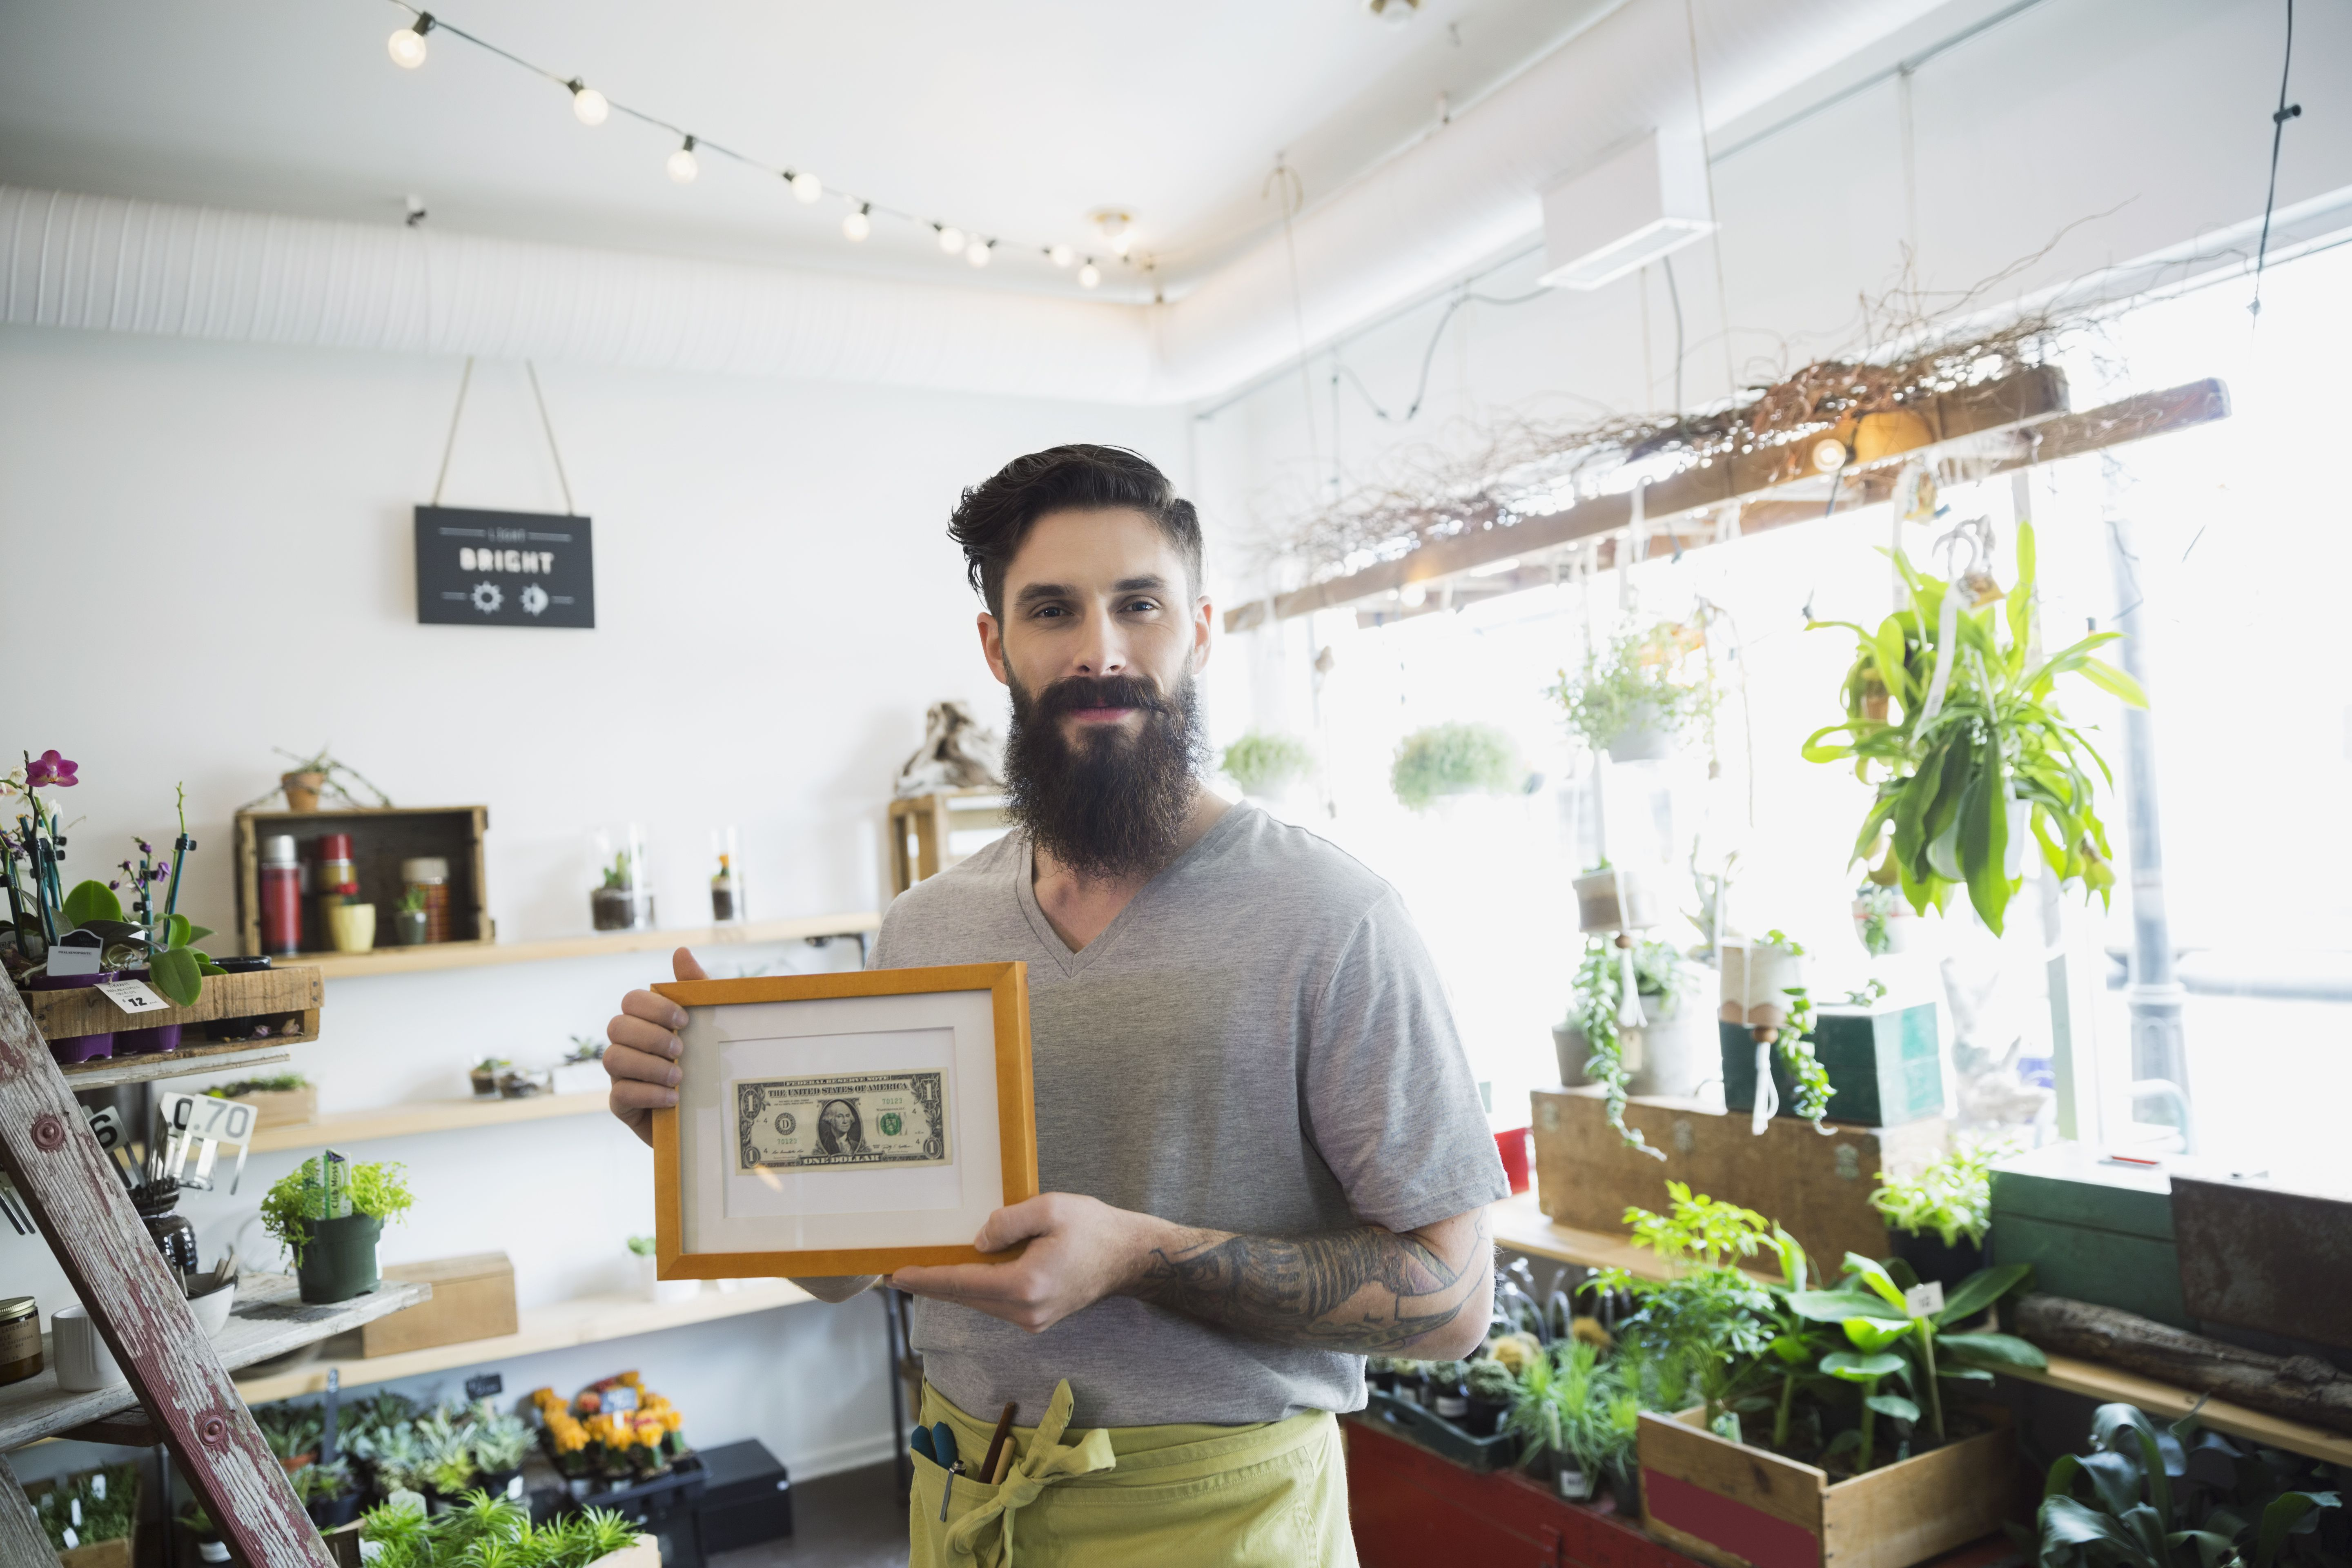 How Your Business Can Make a Profit and Have No Cash